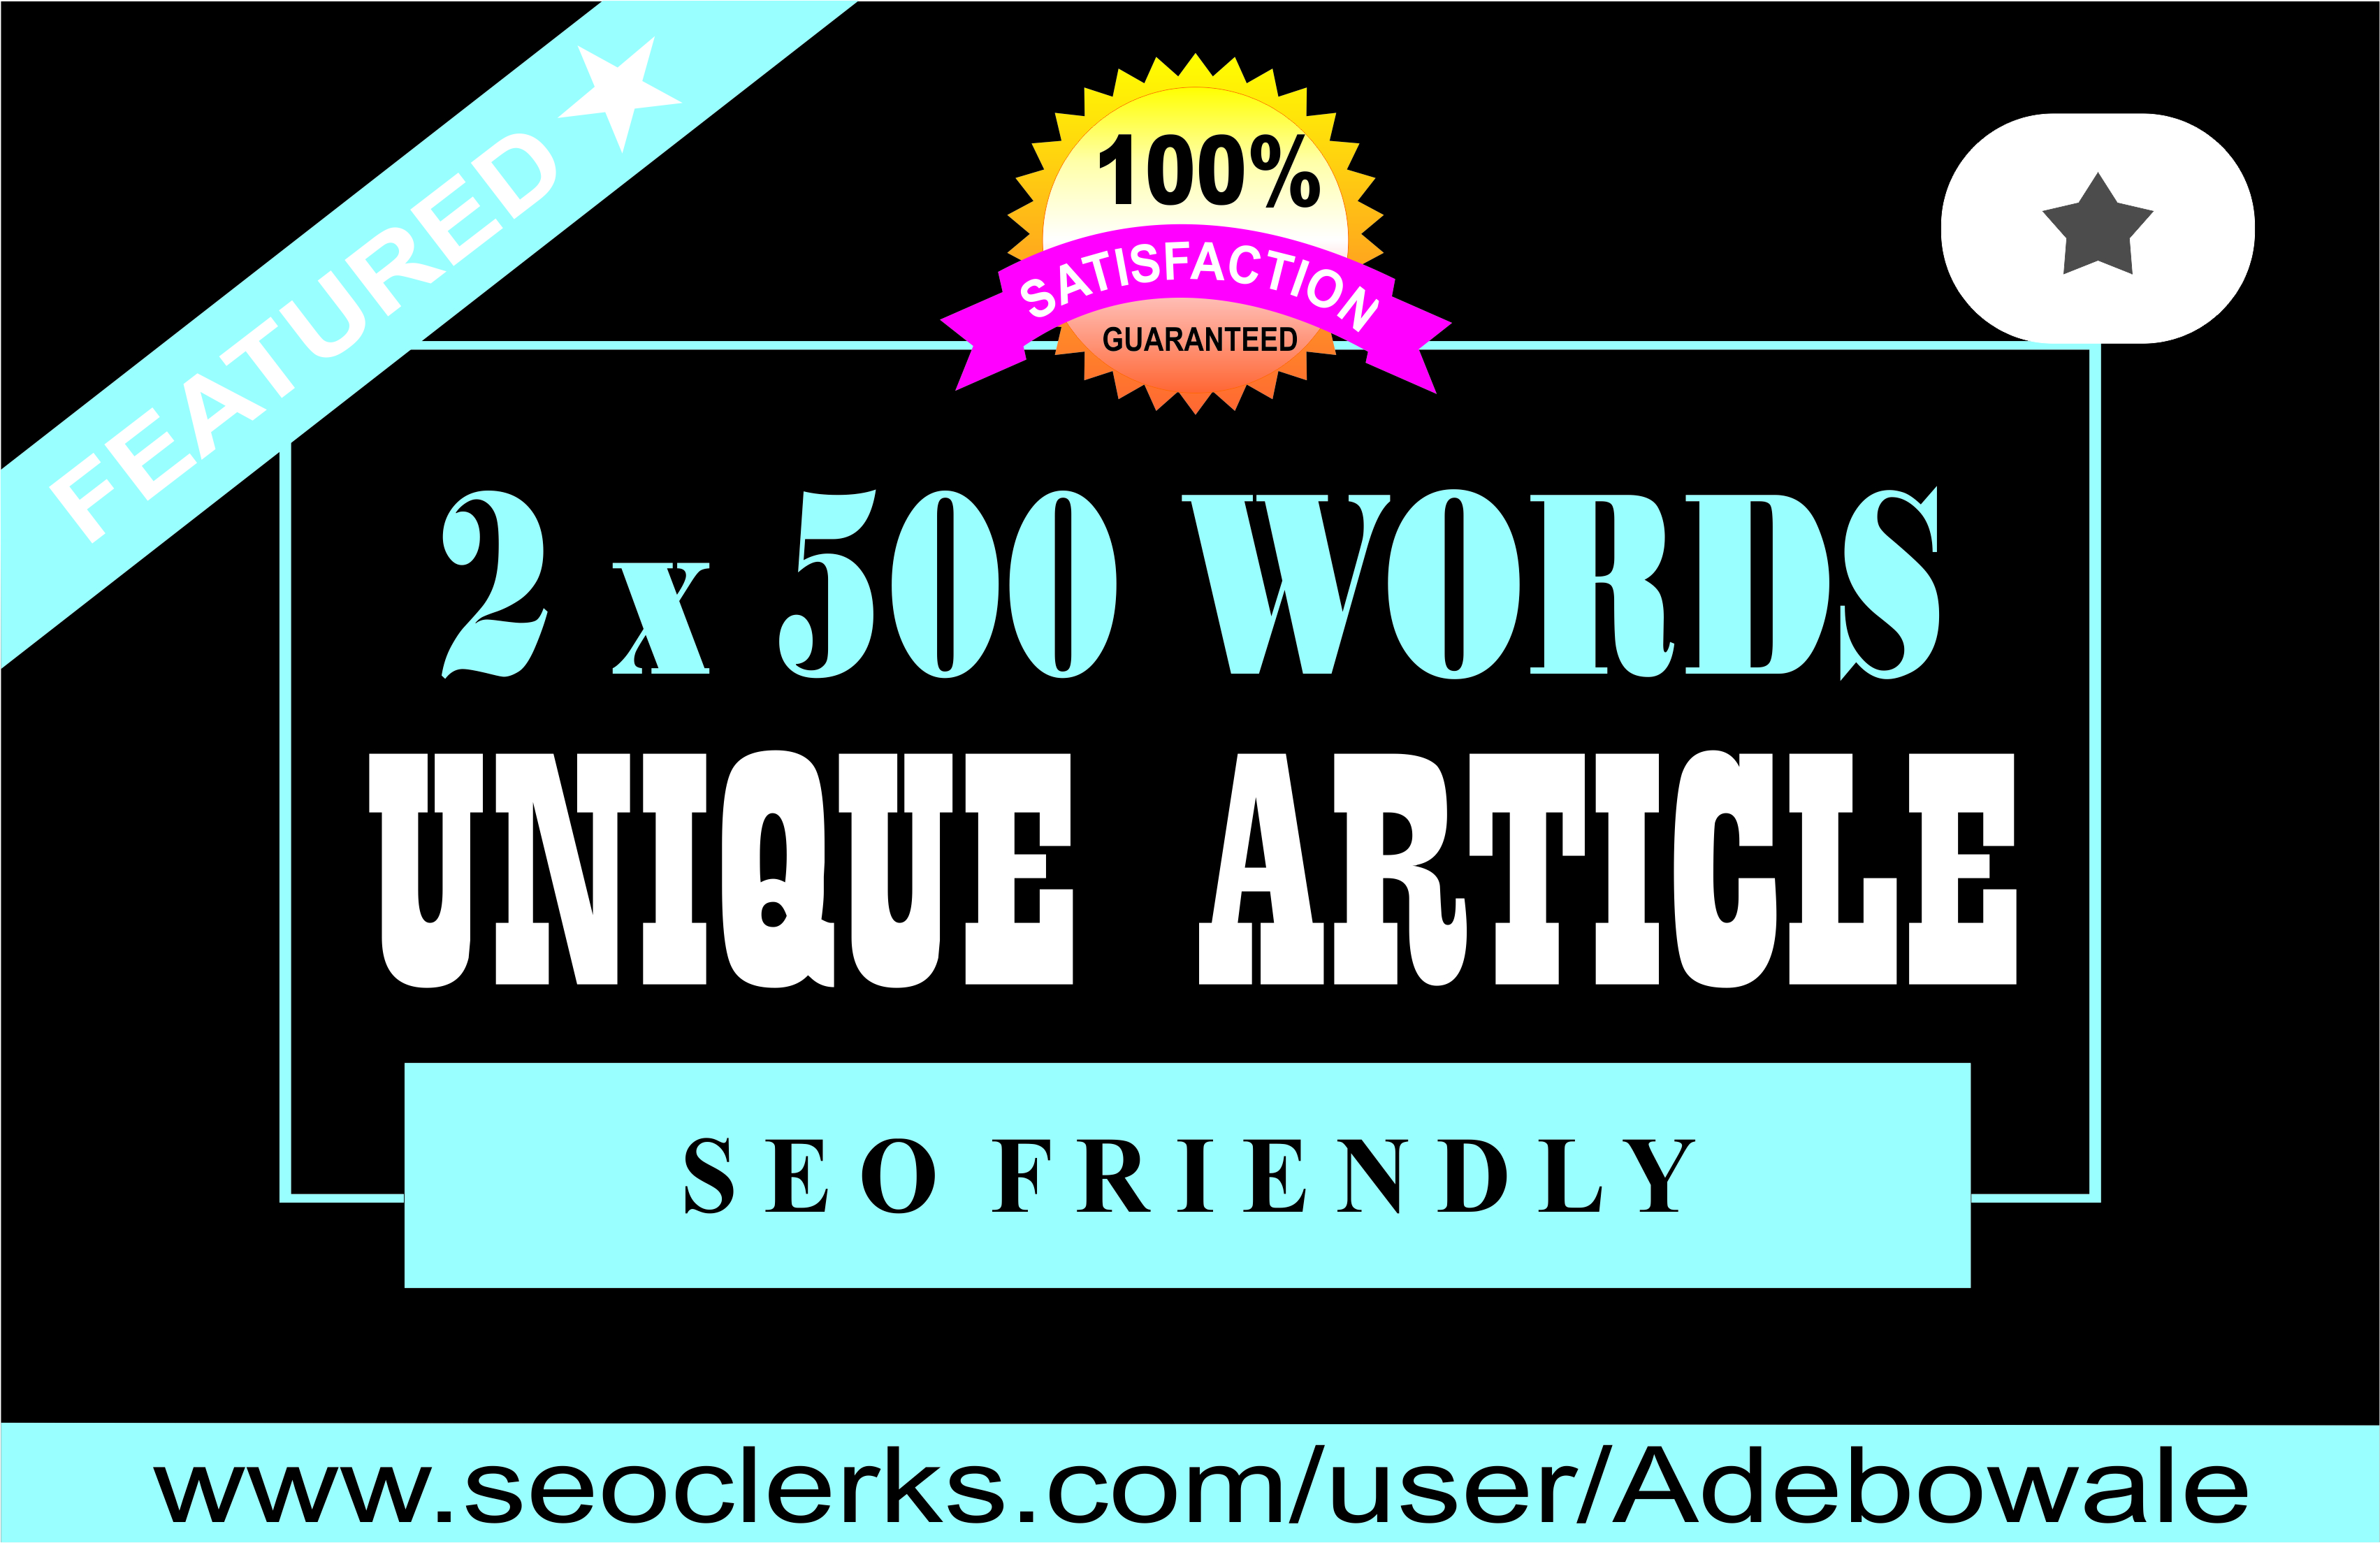 2 x 500 words Premium Article writing,  Content Writing,  well-written for your website or blog